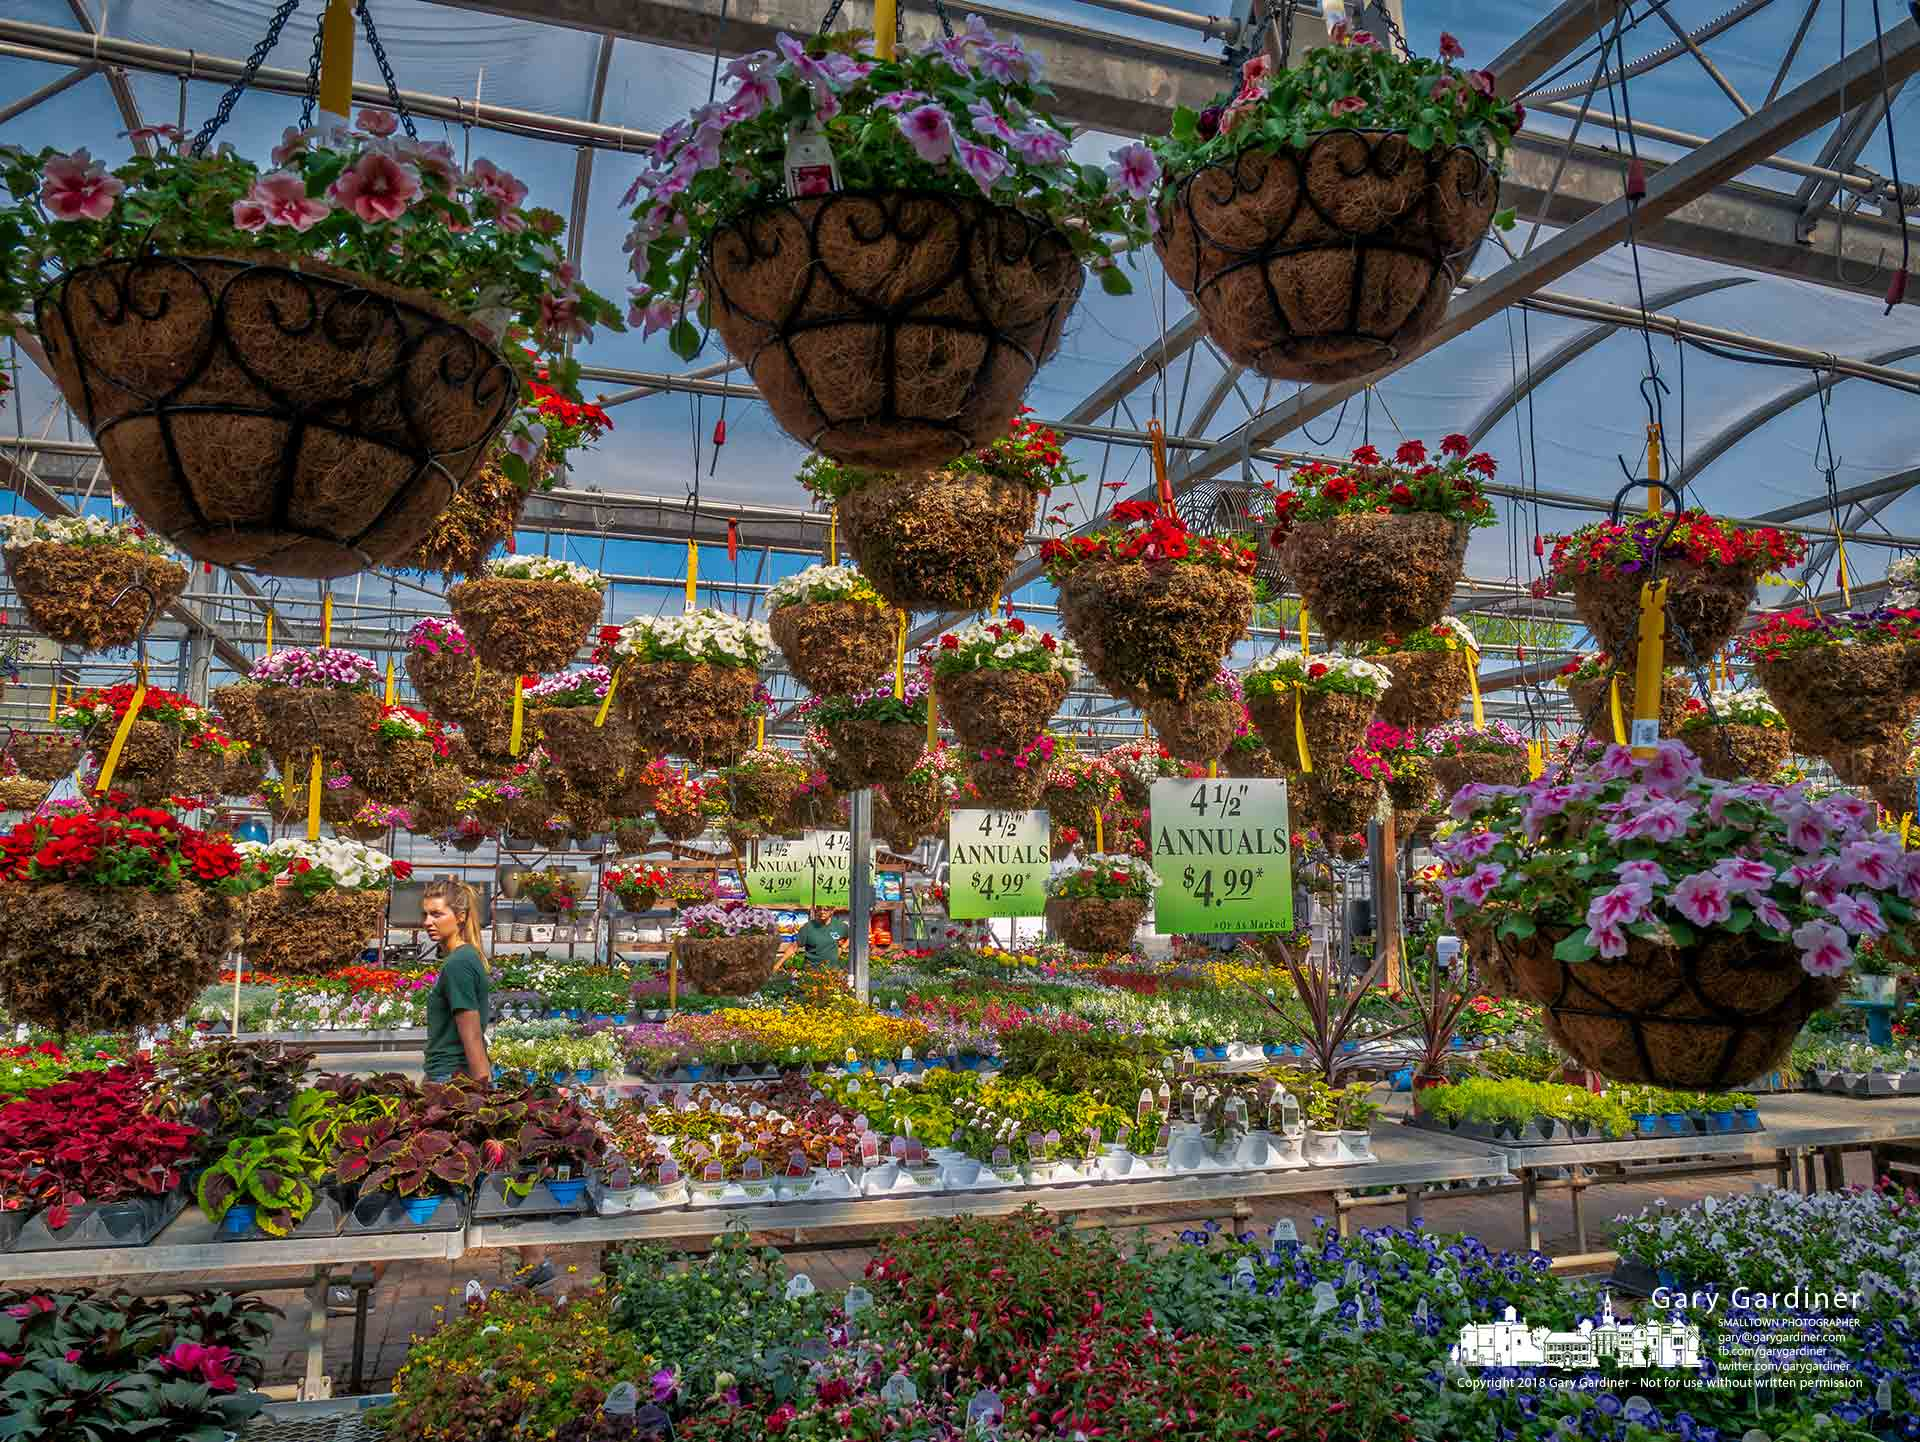 A gardener walks through one of the greenhouses at Hoover Gardens filled with flowering hanging baskets and trays of annuals destined for home gardeners in Westerville. My Final Photofor May 10, 2018.